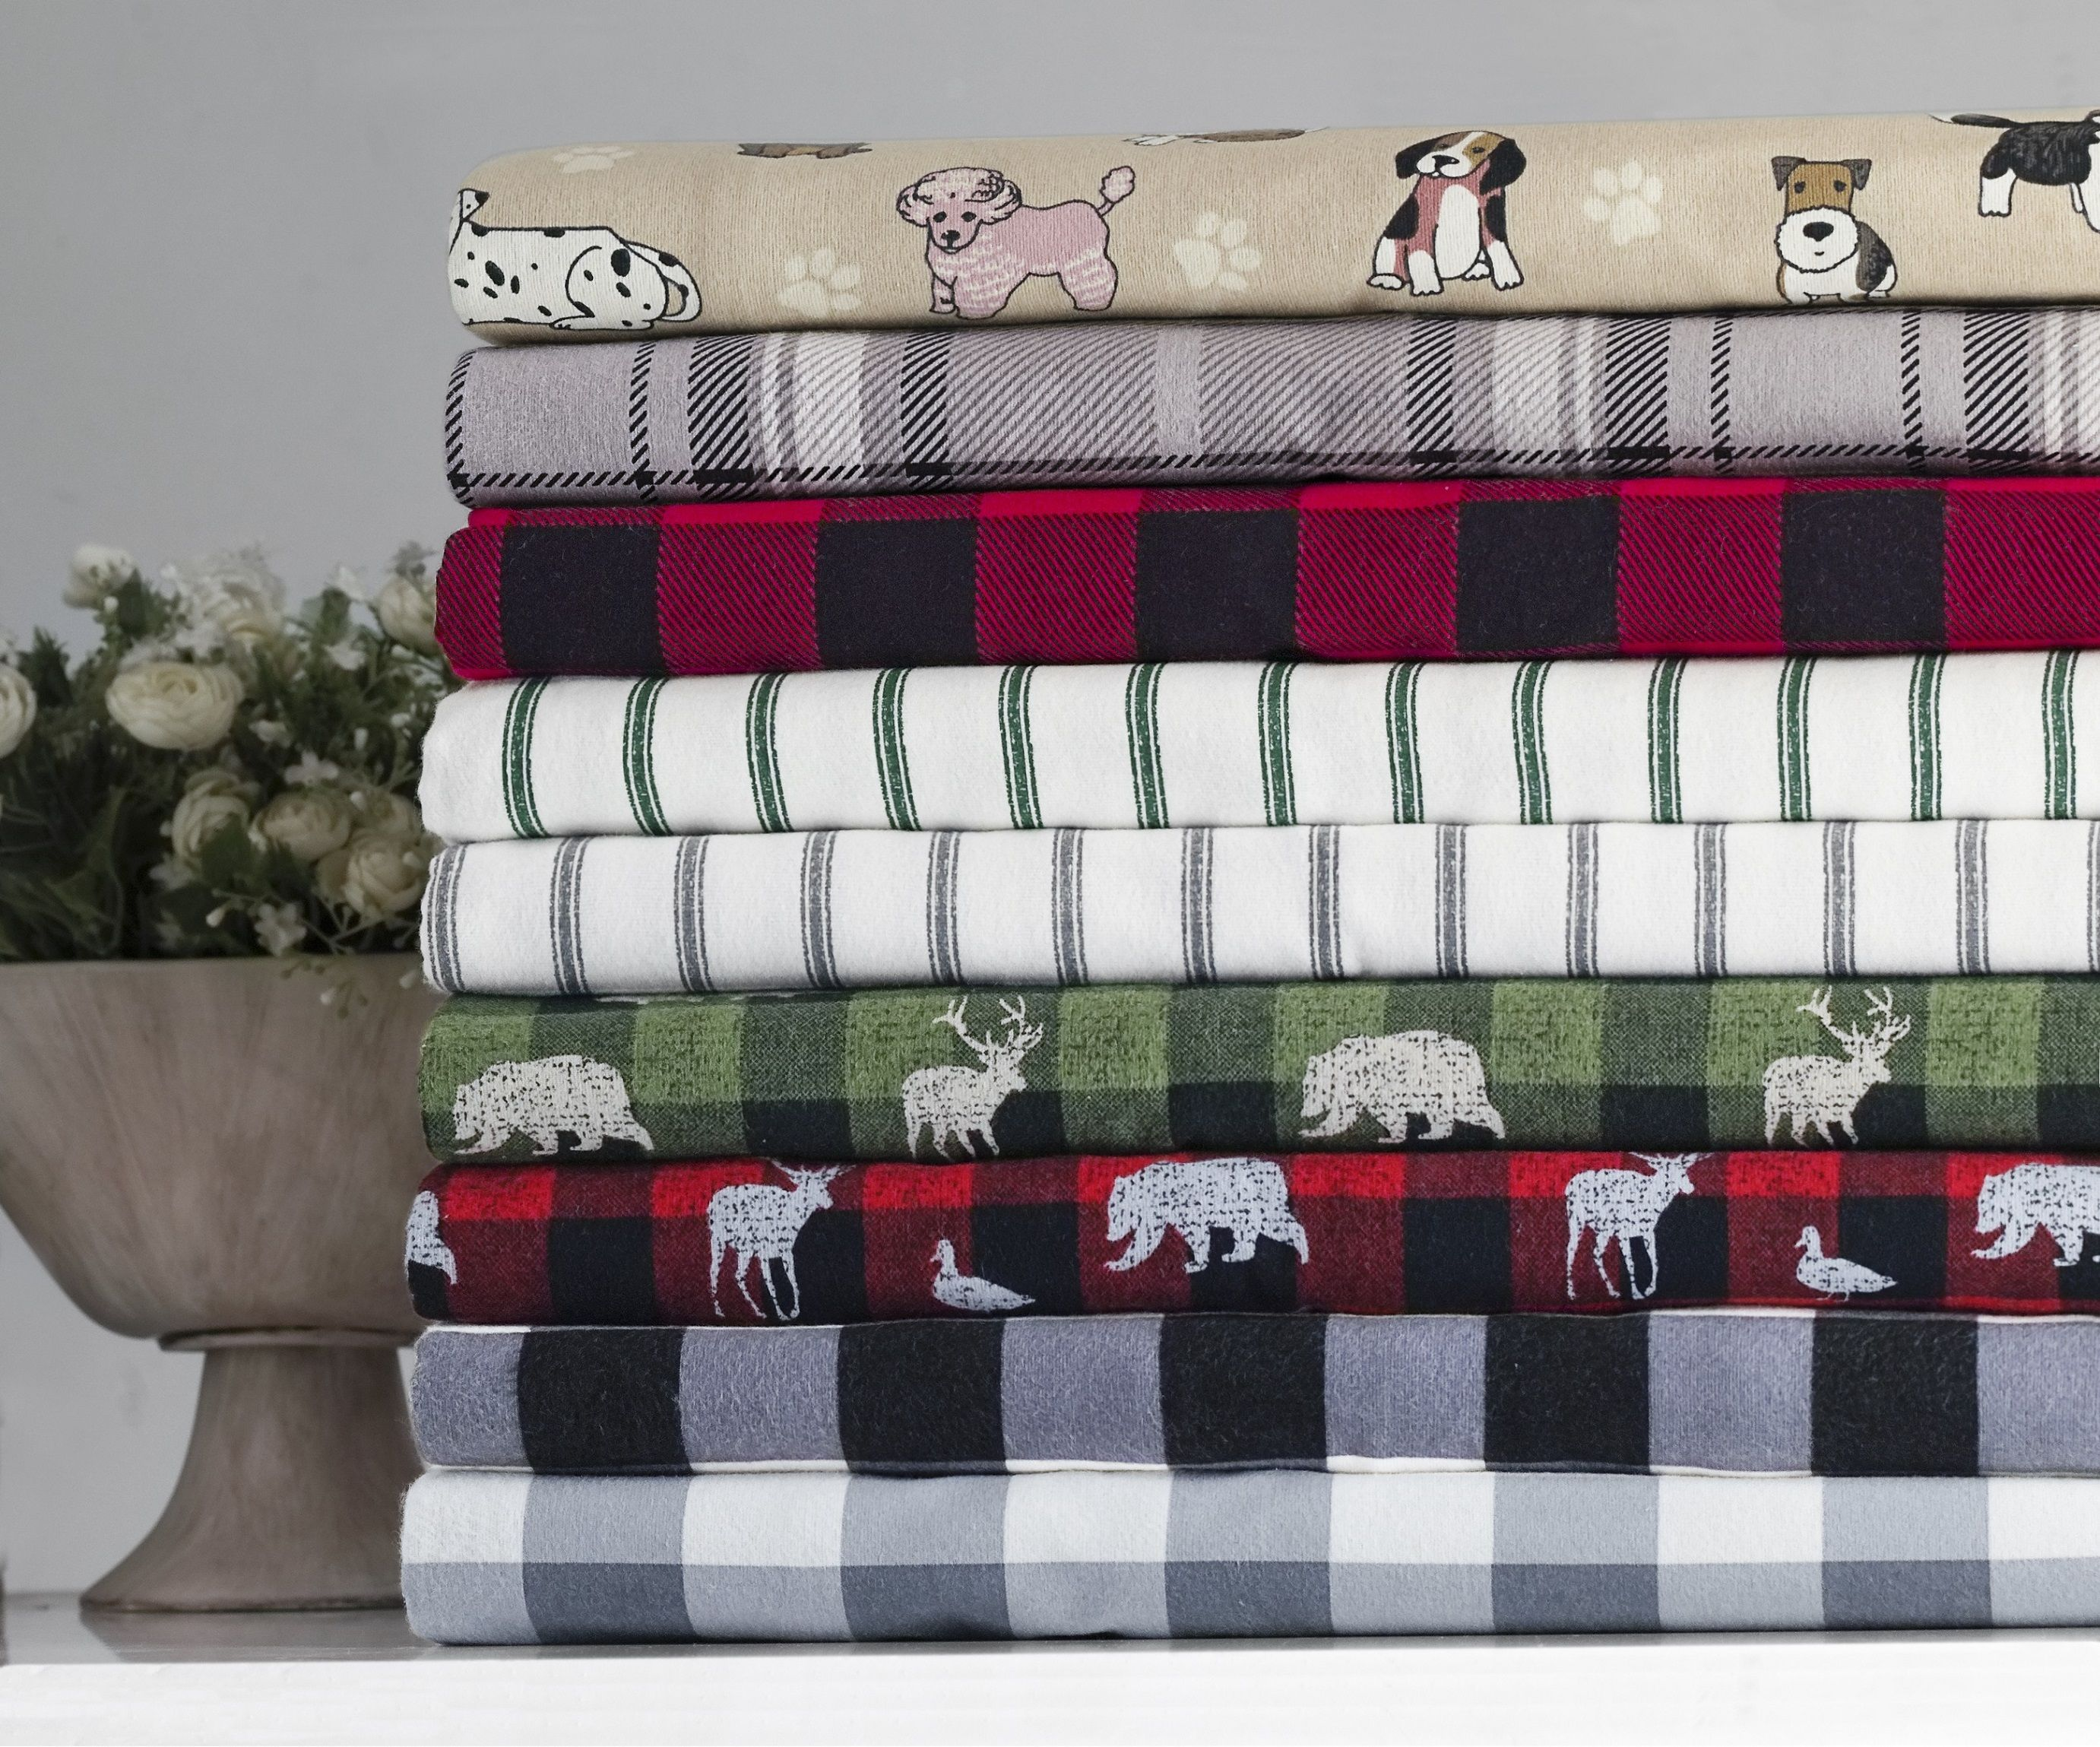 Free 2 Day Shipping Buy Mainstays Buffalo Plaid 155 Gsm 100 Cotton Flannel Sheet Set Black Queen At Walmart Flannel Bed Sheets Comforters Cozy Sheet Sets